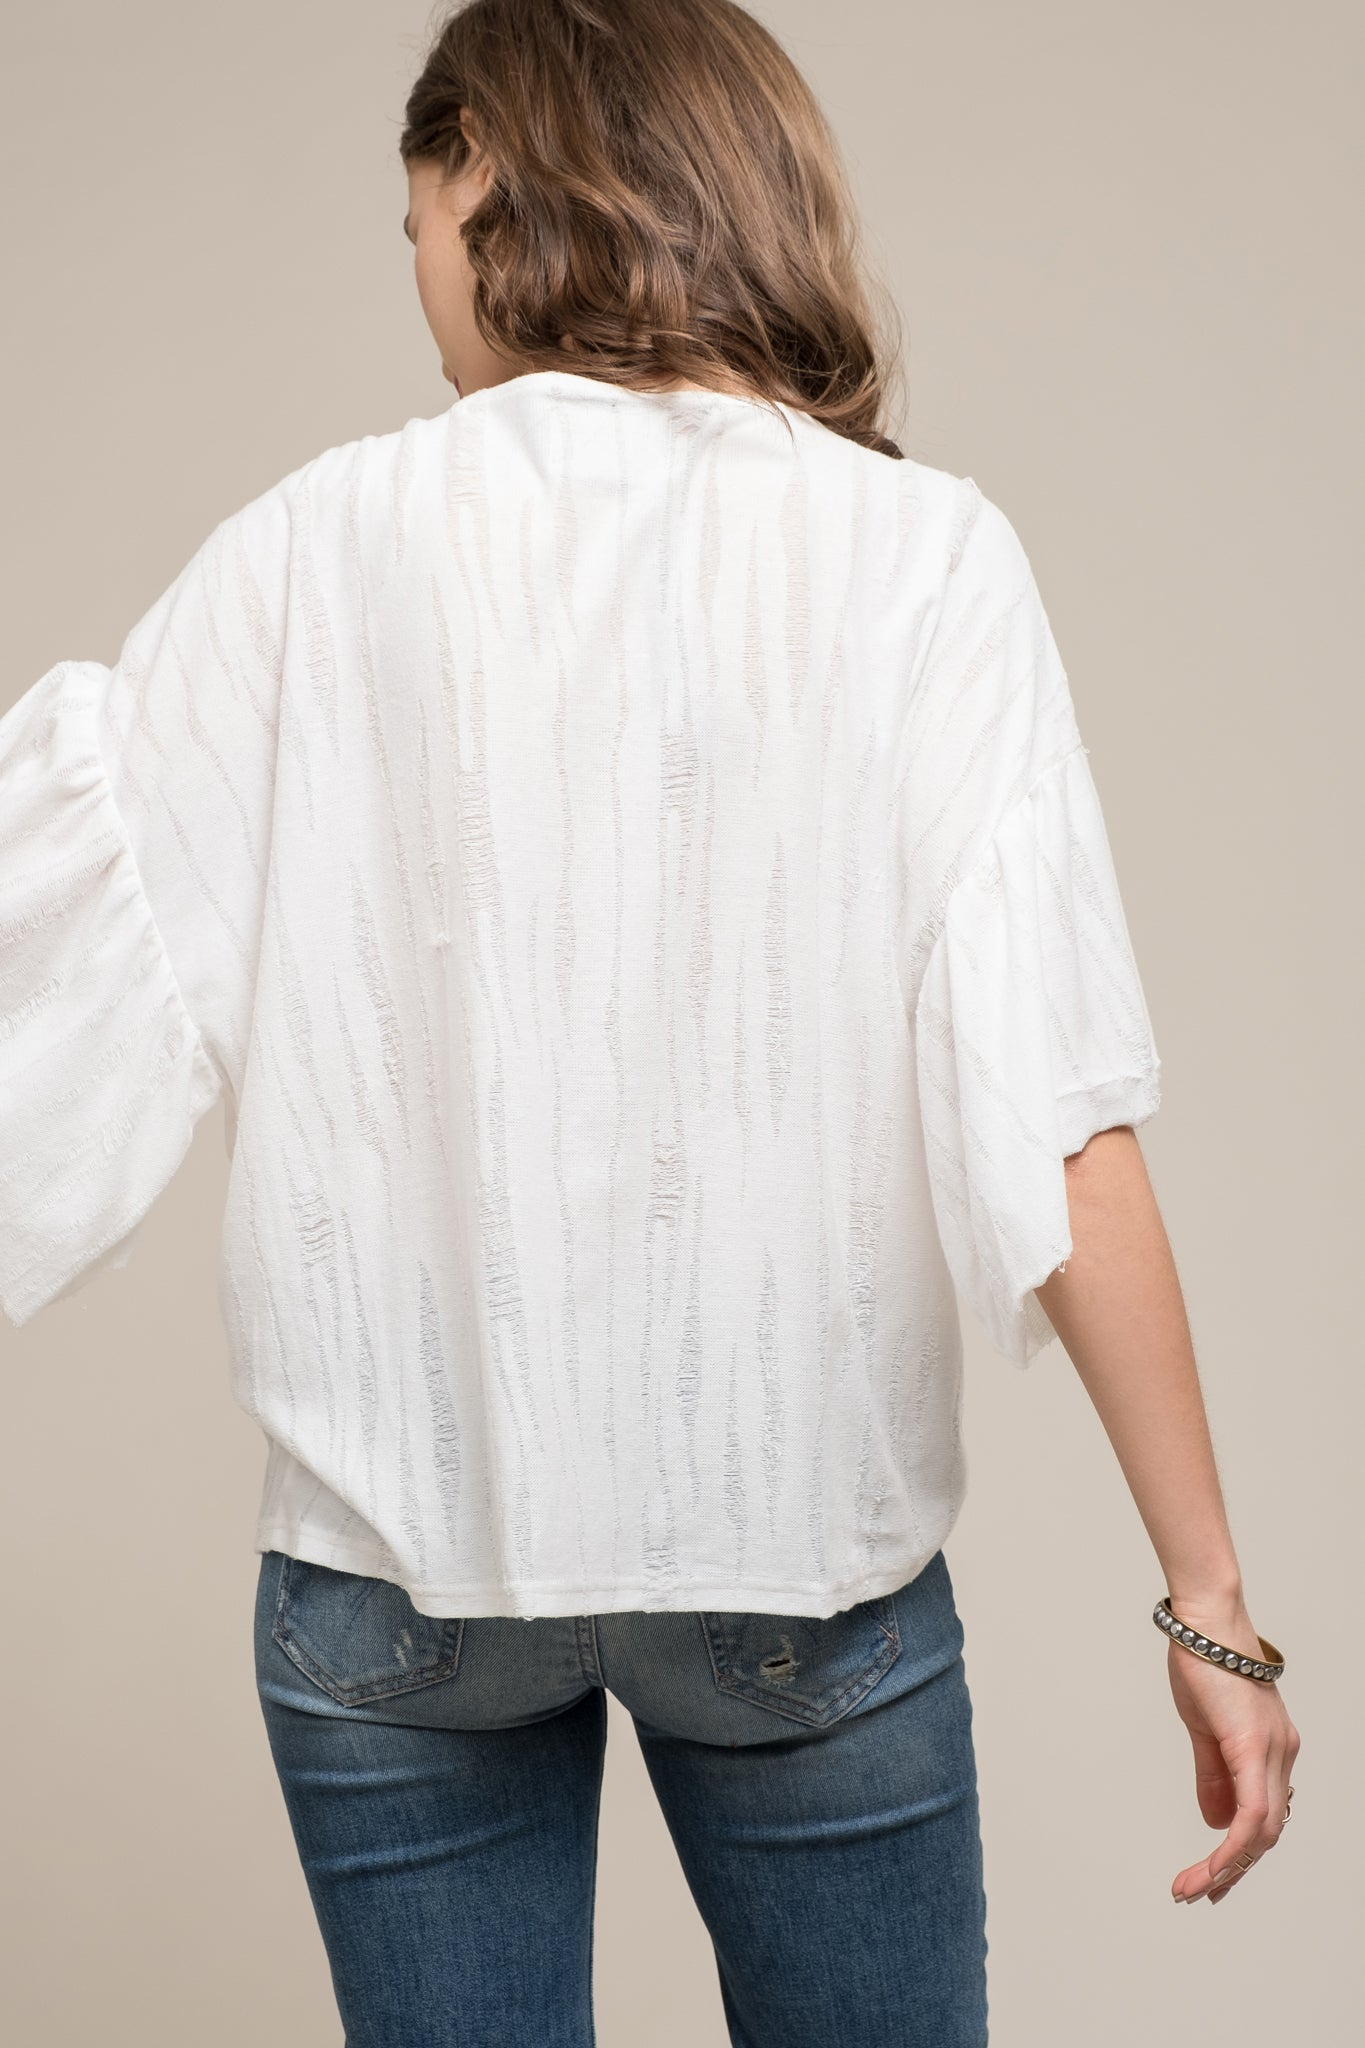 LACE UP FRONT TOP WITH FLARED SLEEVES